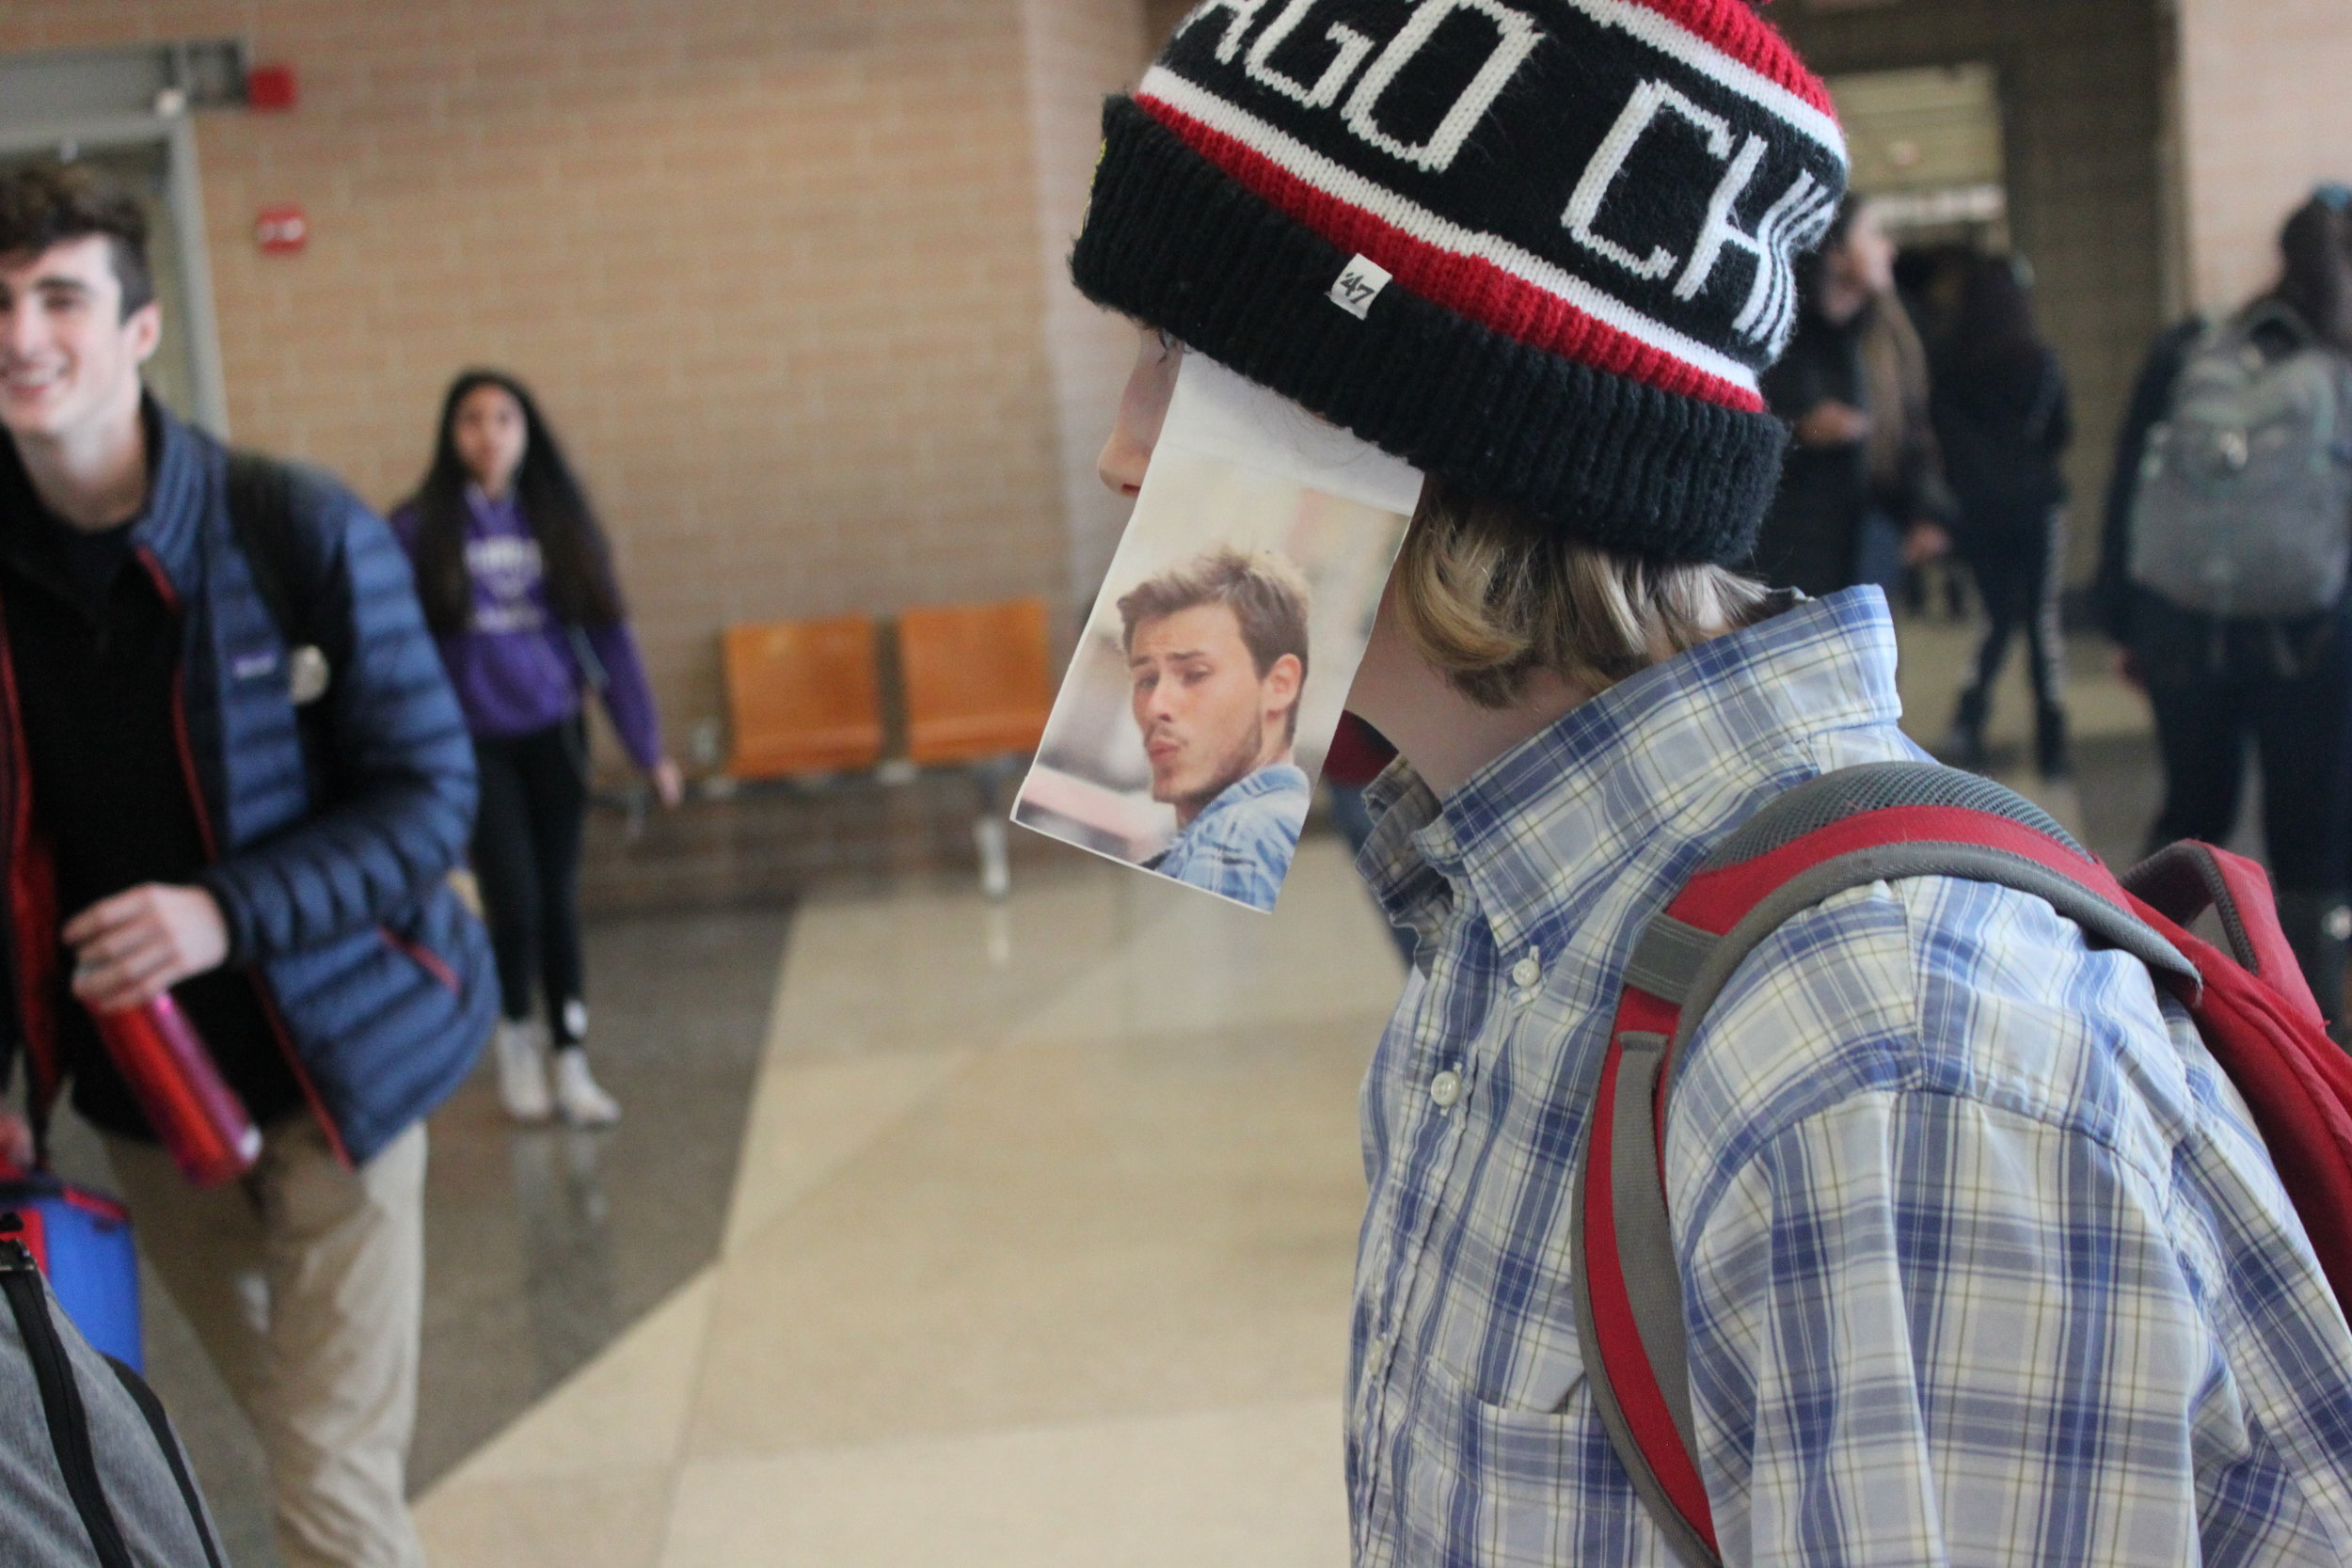 This student taped the meme he was interpreting to his hat.